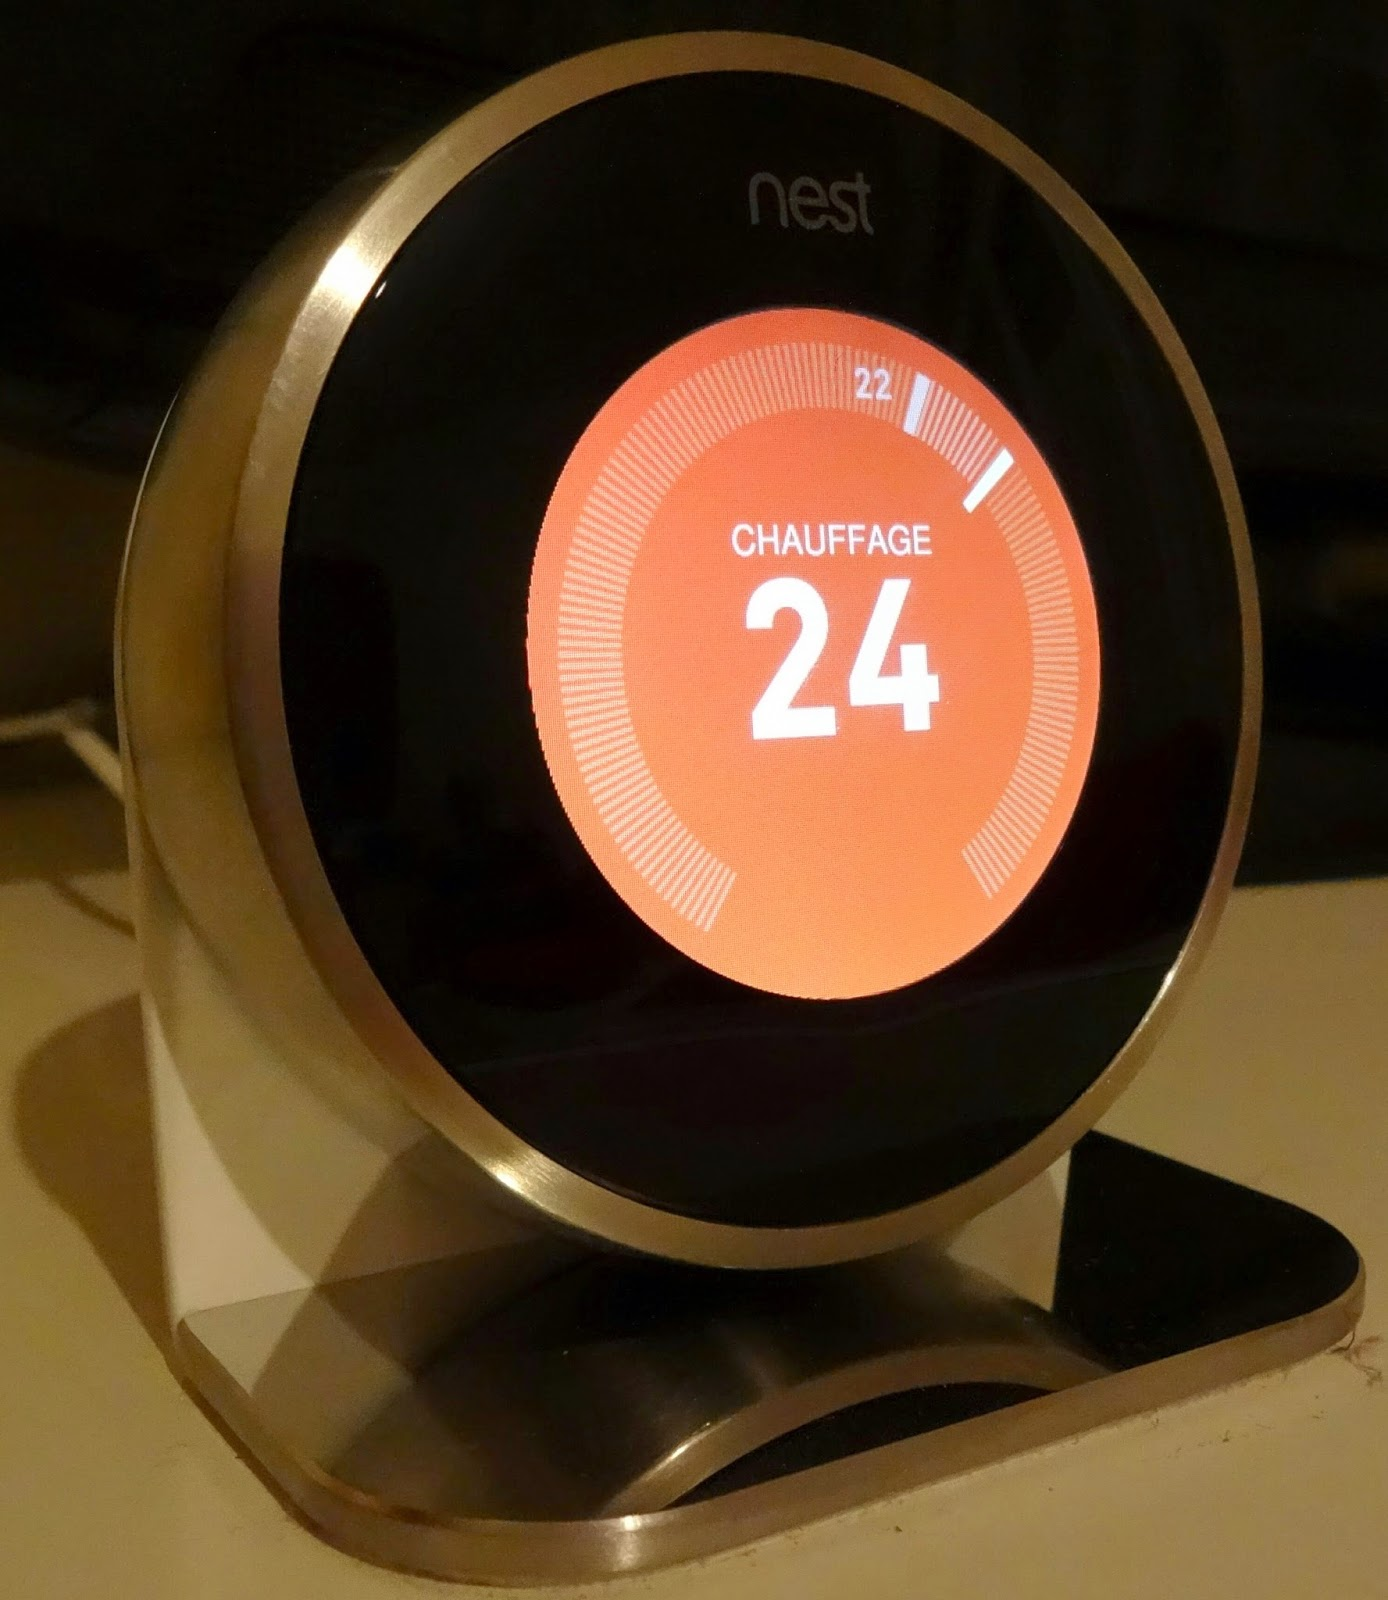 mes droldids installer un thermostat connect nest. Black Bedroom Furniture Sets. Home Design Ideas